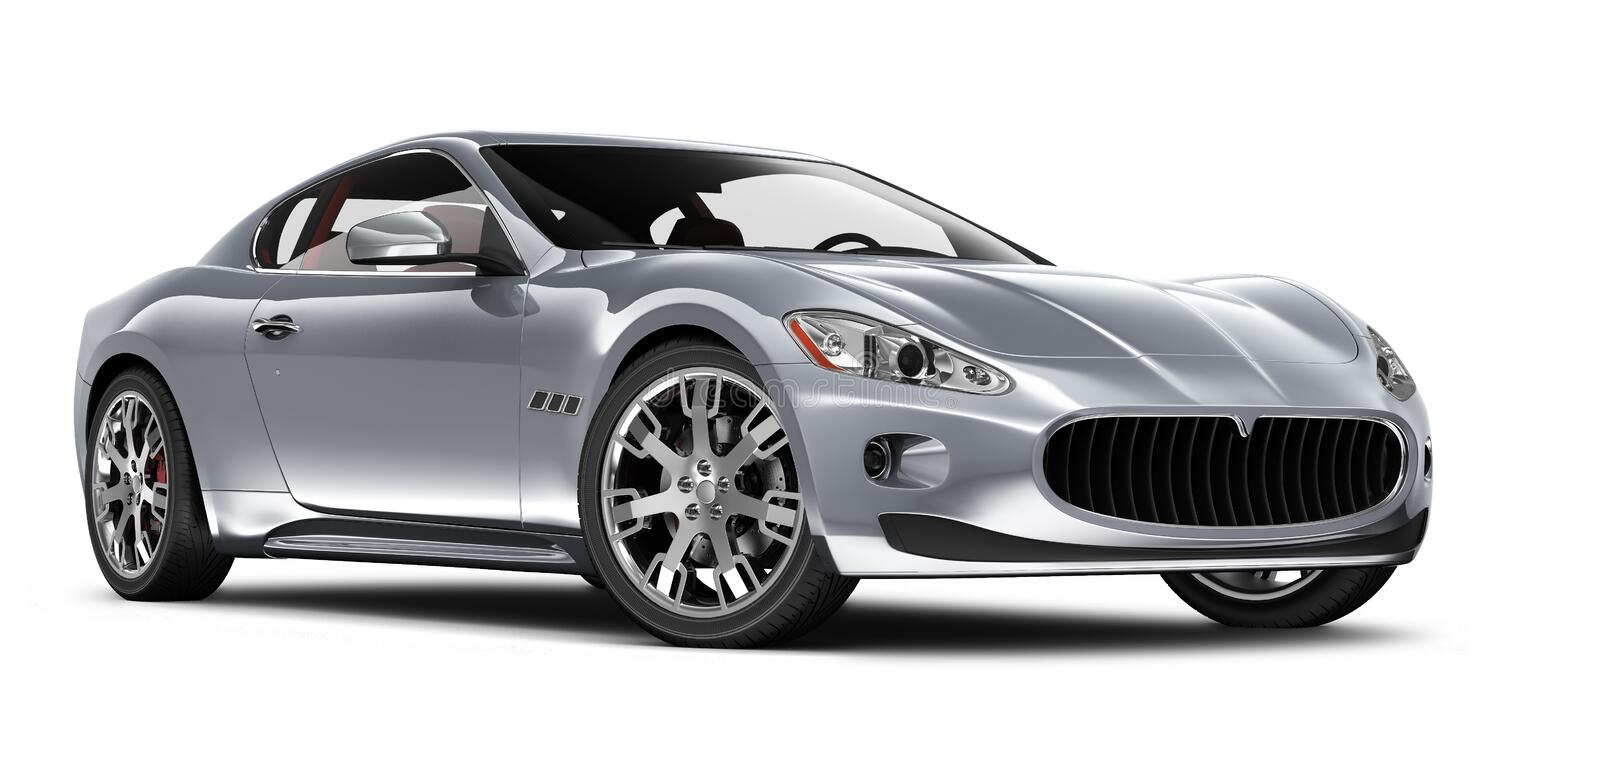 Silver sport coupe car royalty free stock photo